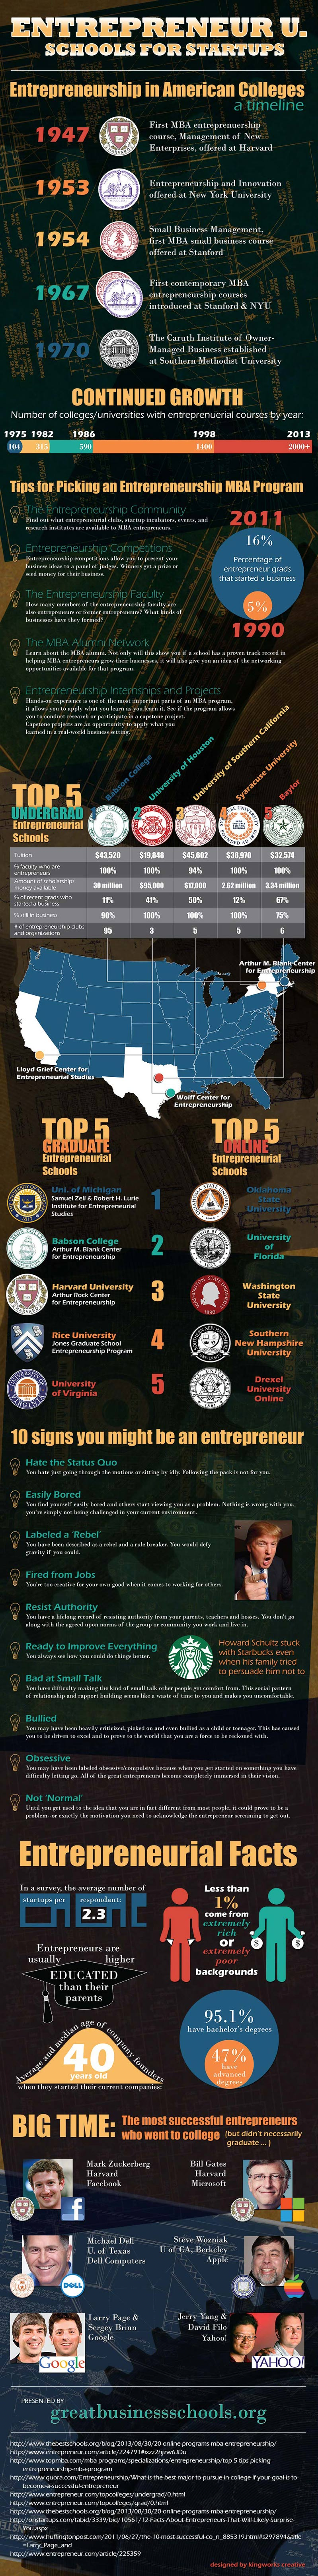 Entrepreneurial Education in the US-Infographic